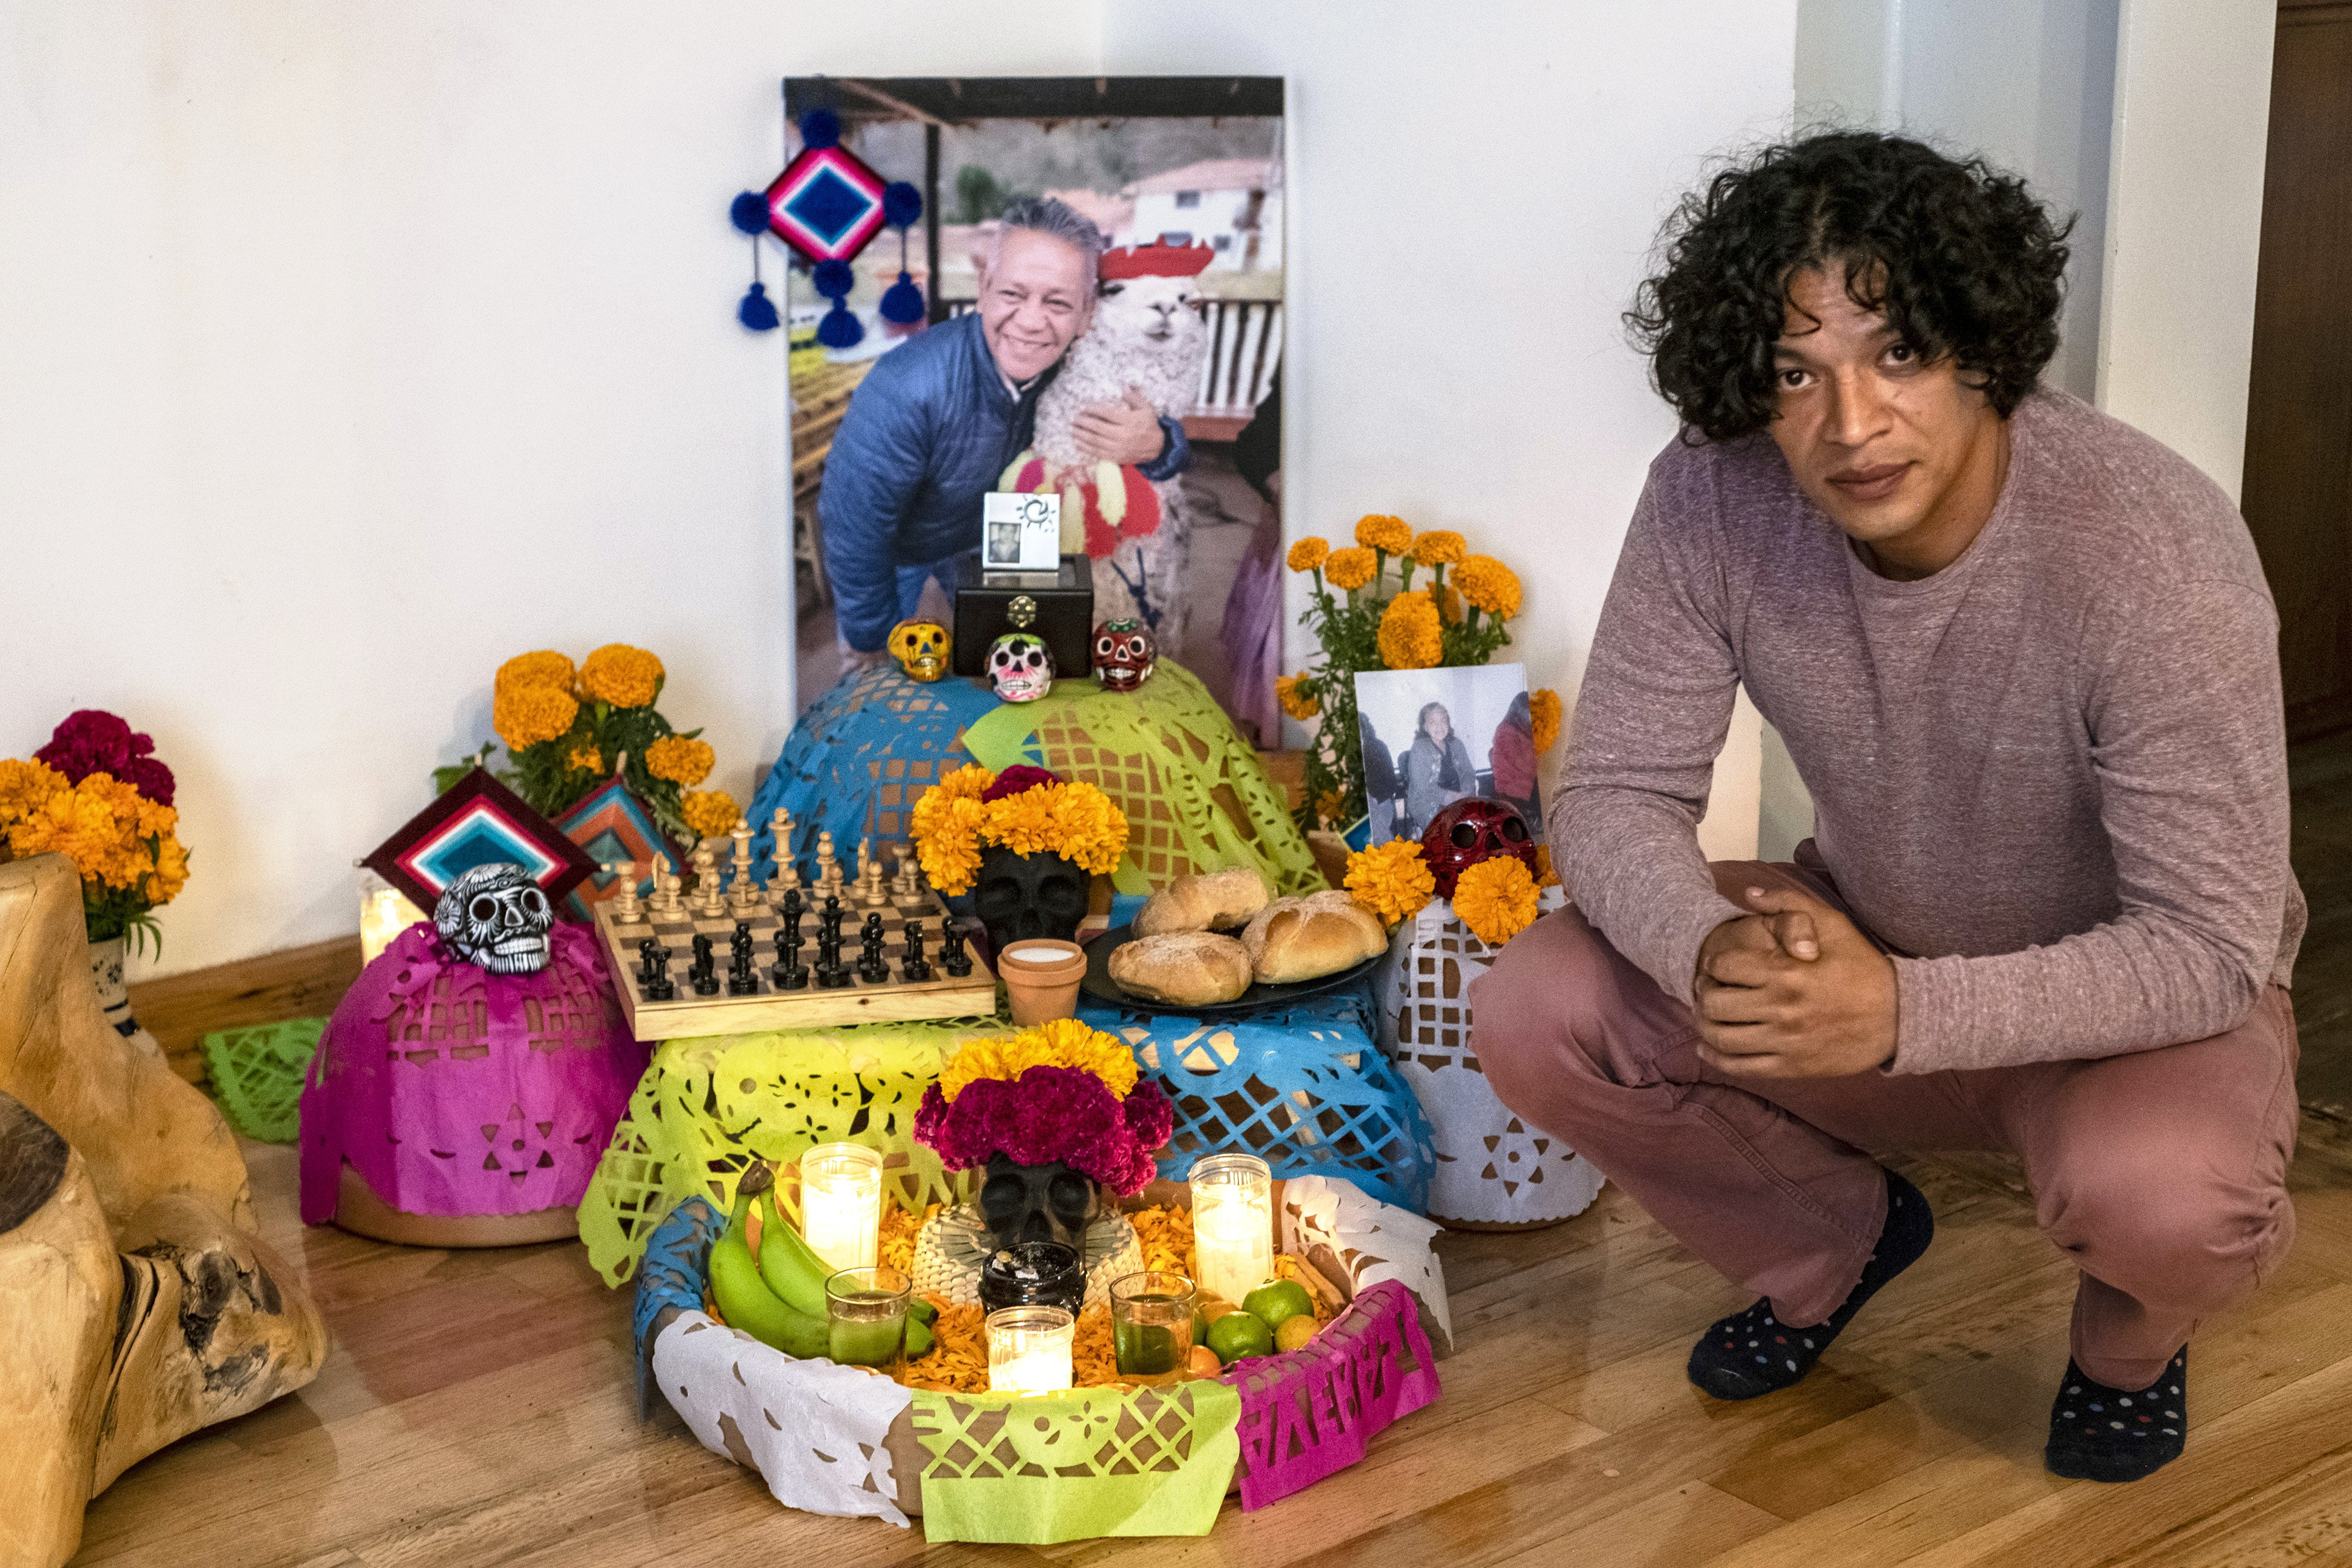 Luis Salas has made an altar in honour of his father Jose Javier Alfredo Salas Aguilar, who died of COVID in August